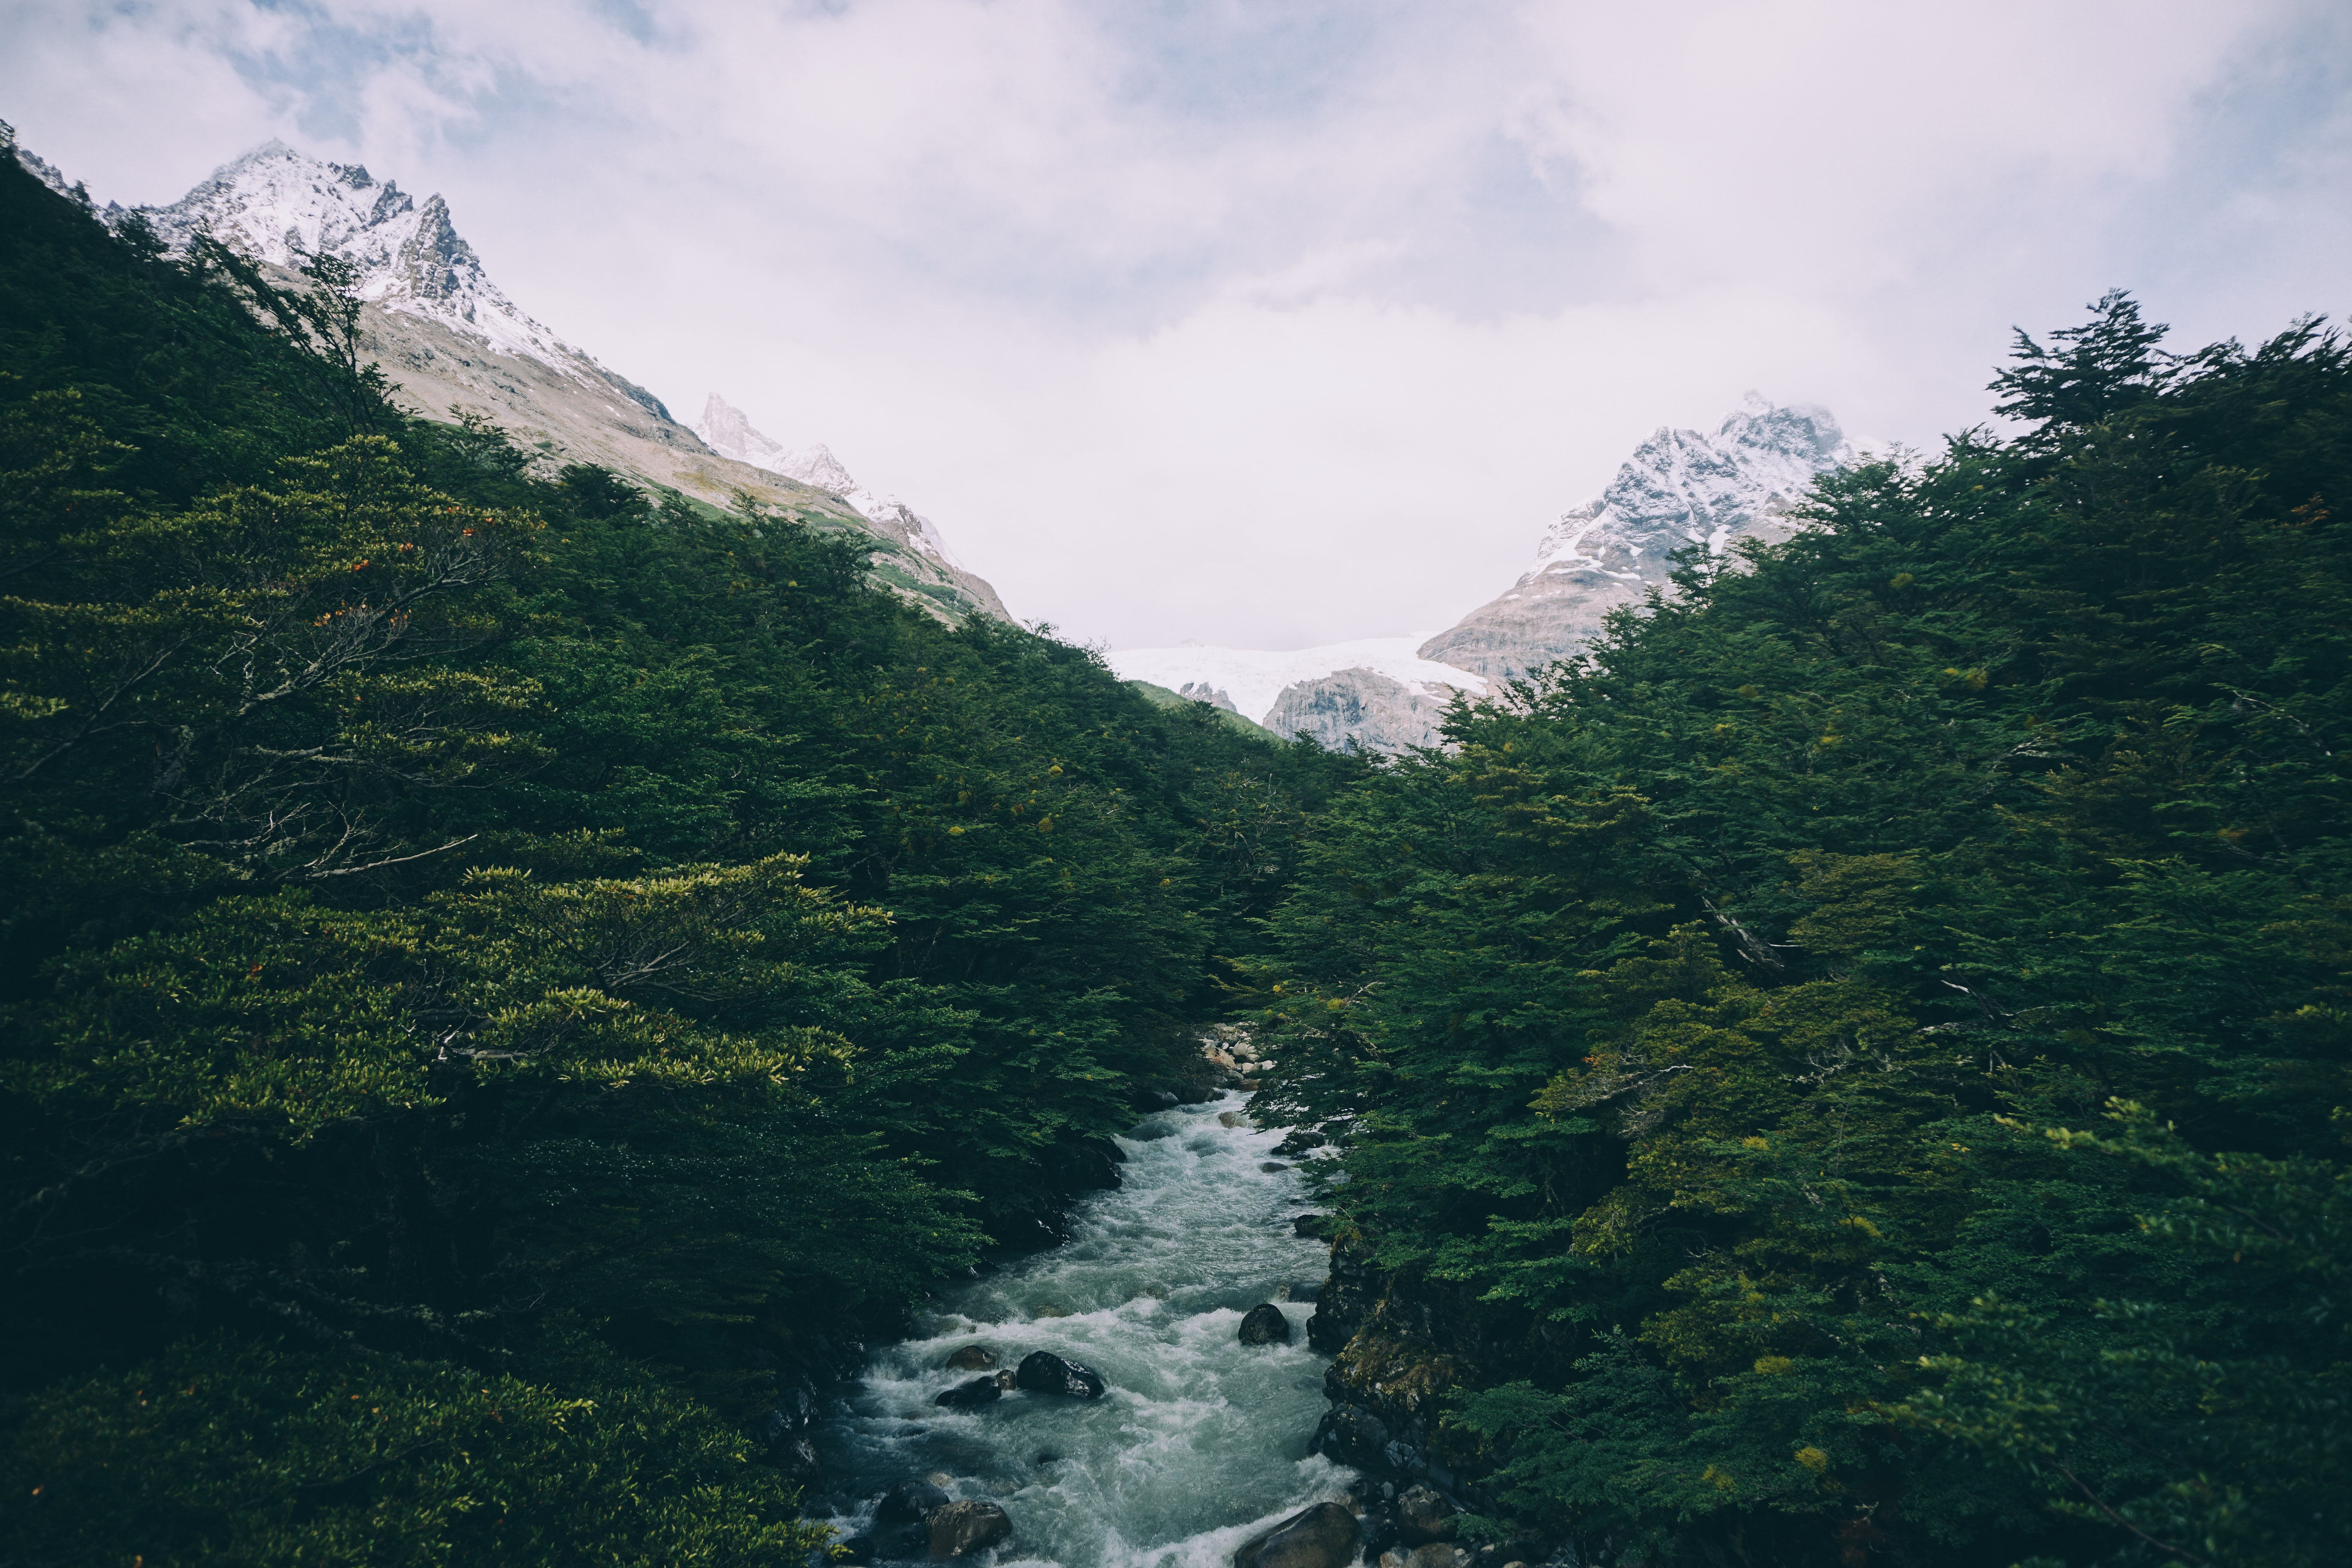 A frothy tree-lined stream in the mountains in Torres del Paine National Park